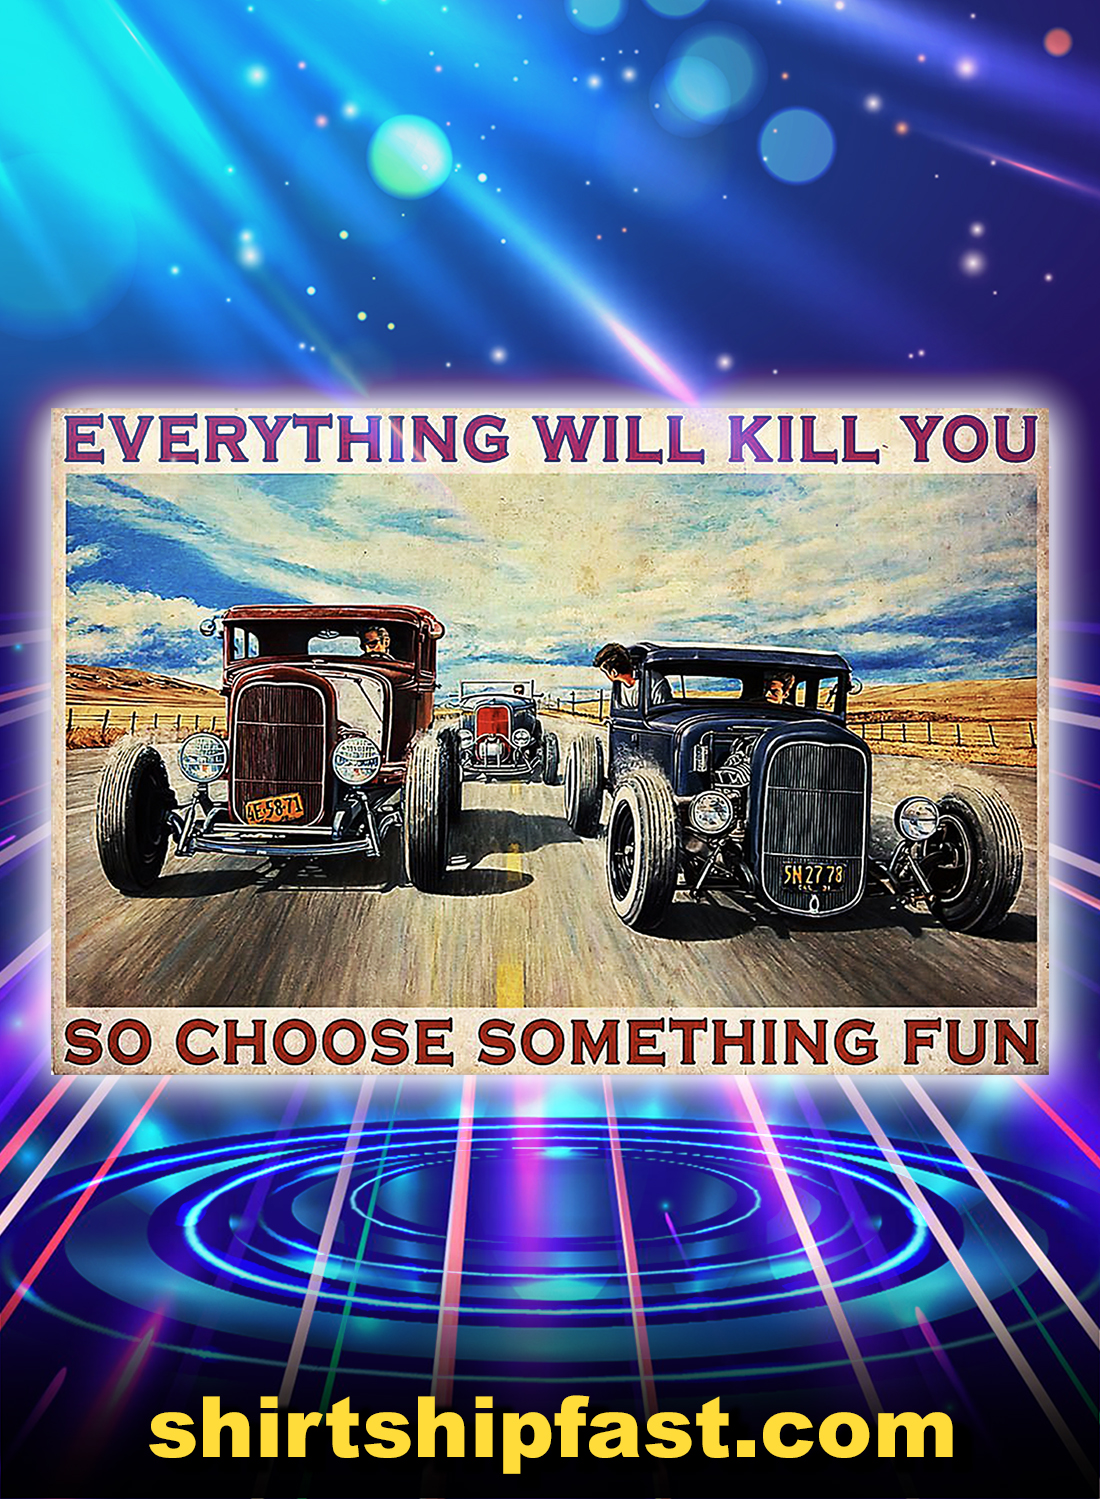 Hot rod racing everything will kill you so choose something fun poster - A4